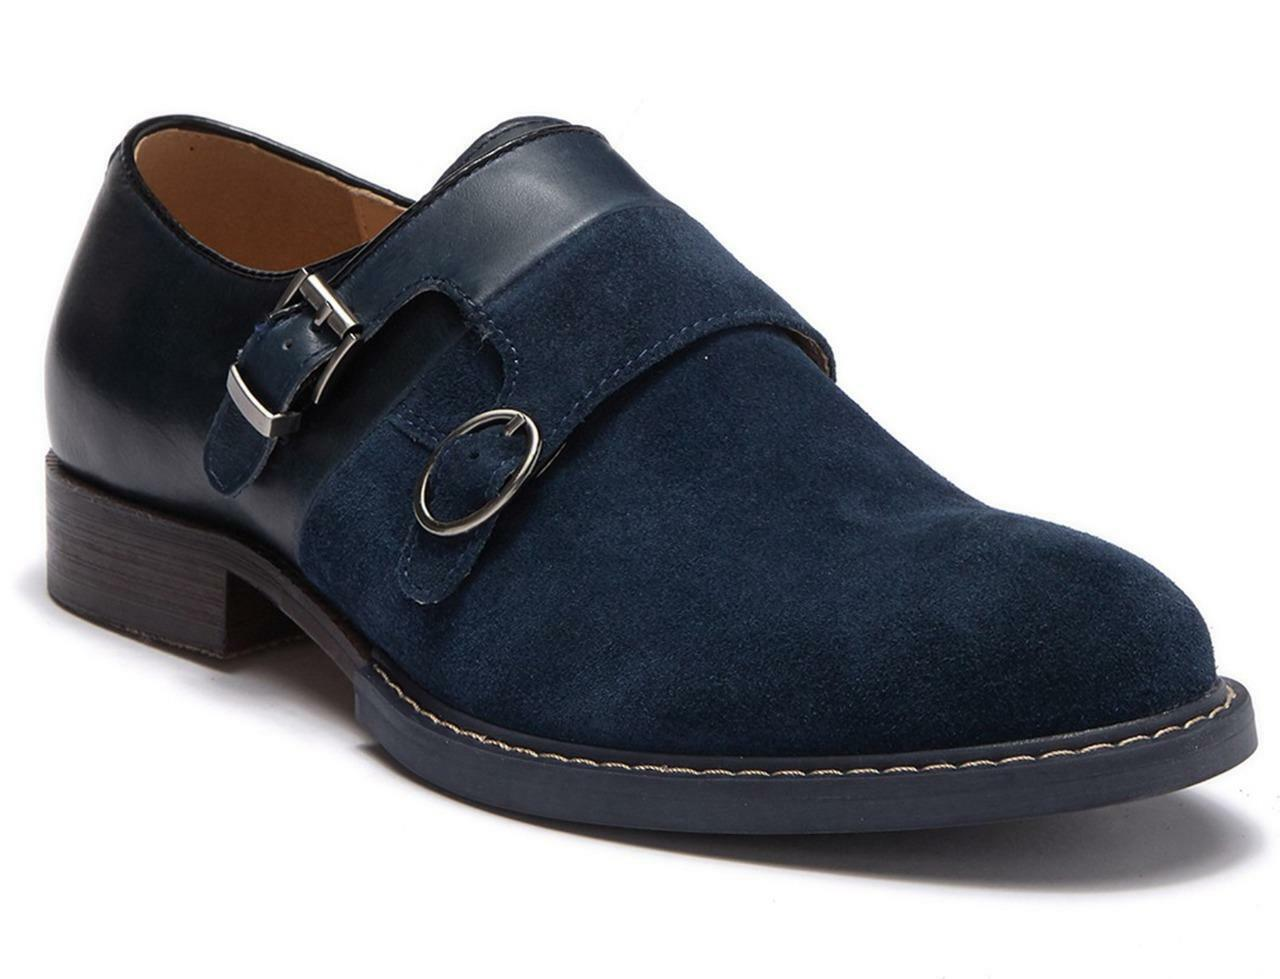 New in Box -  379 Vintage Foundry The Obsidian Monk Strap Derby Oxfords Size 10